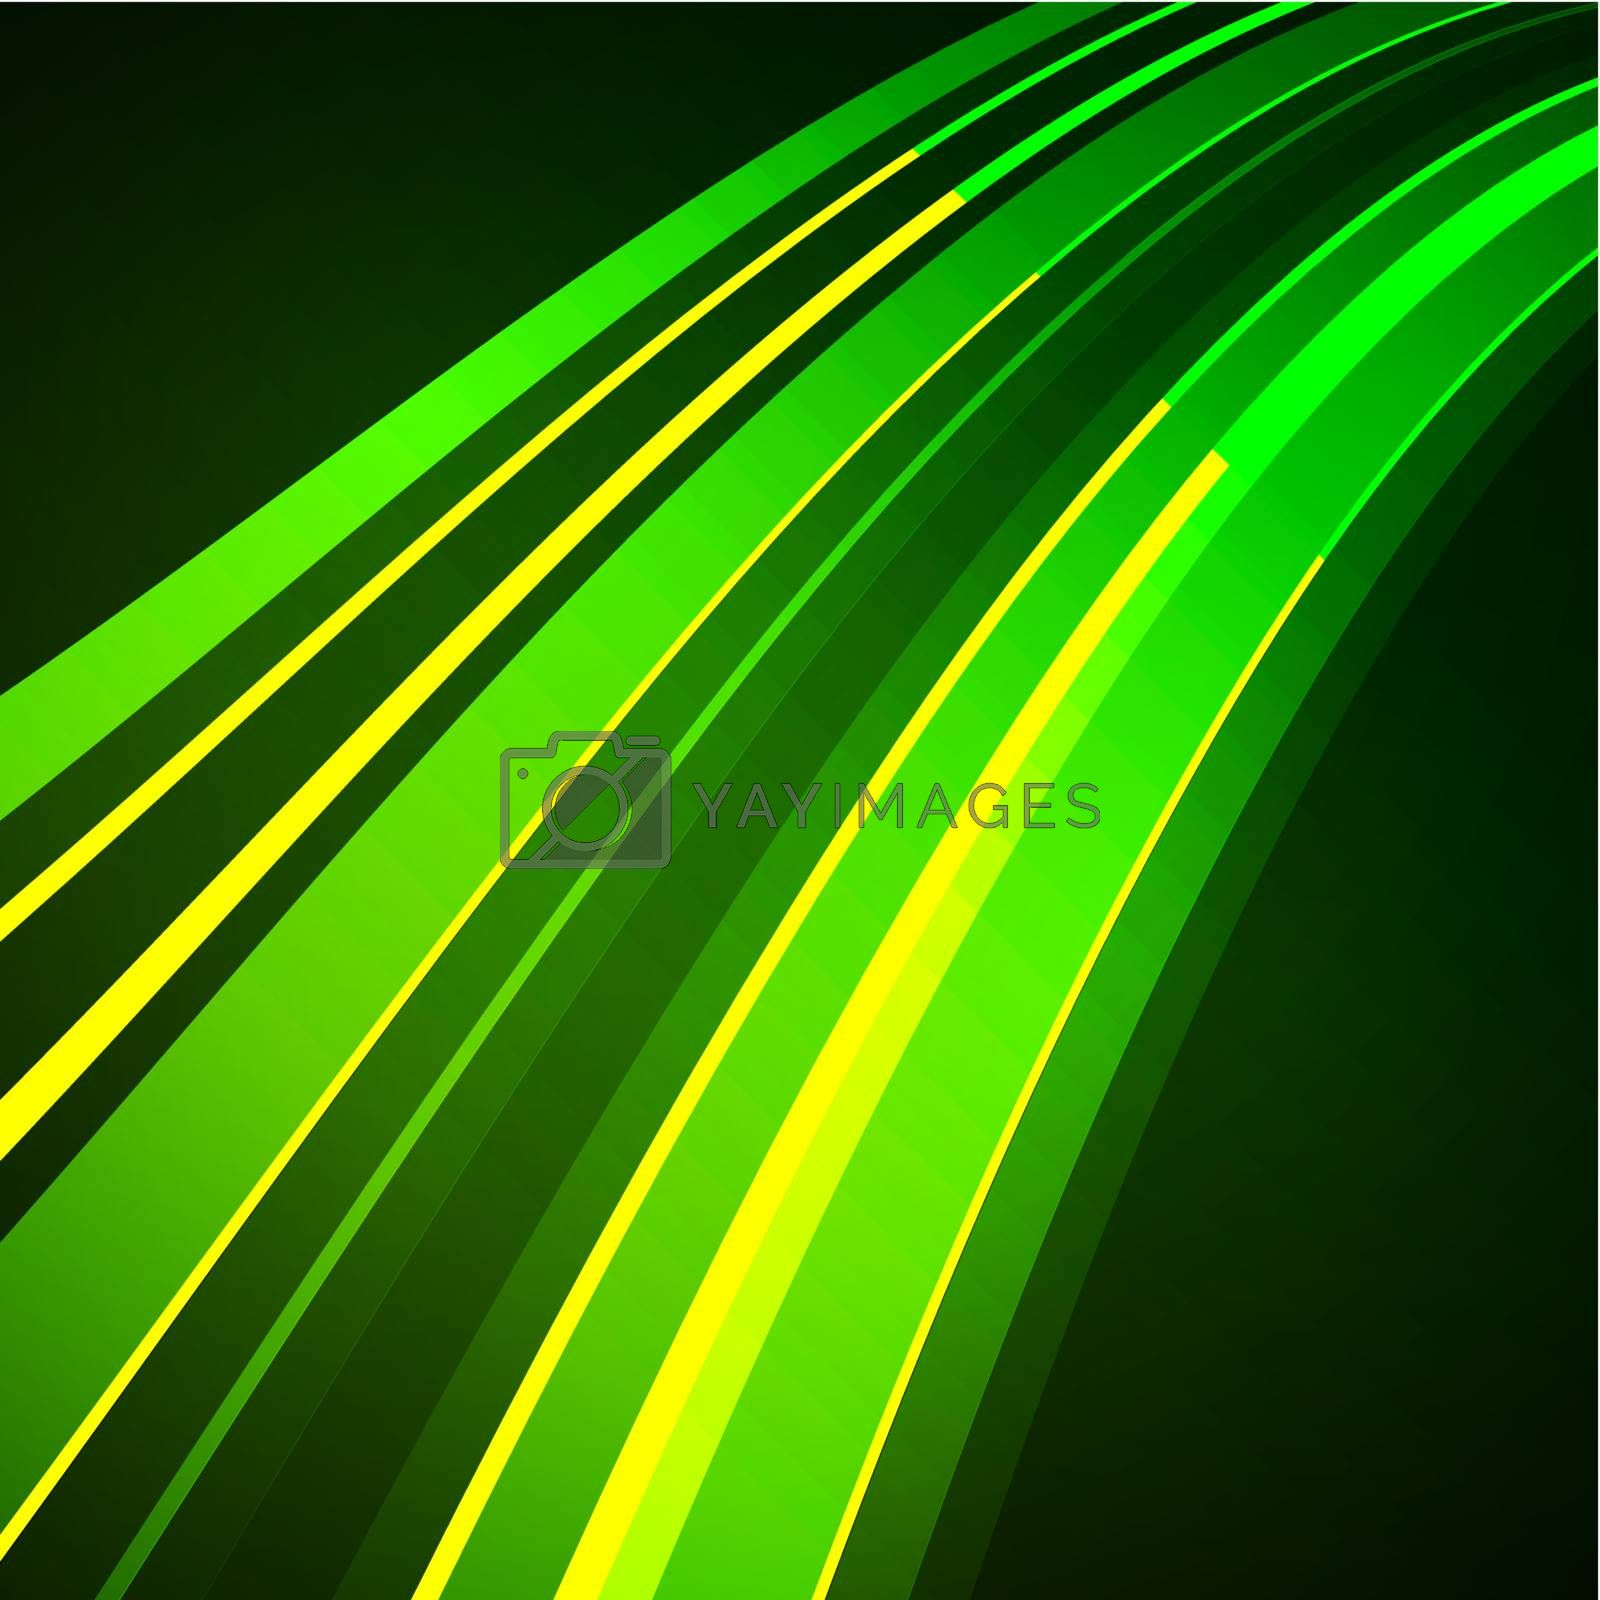 Stripes Design - EPS10 Abstract Vector Background  EPS 10 vector file included